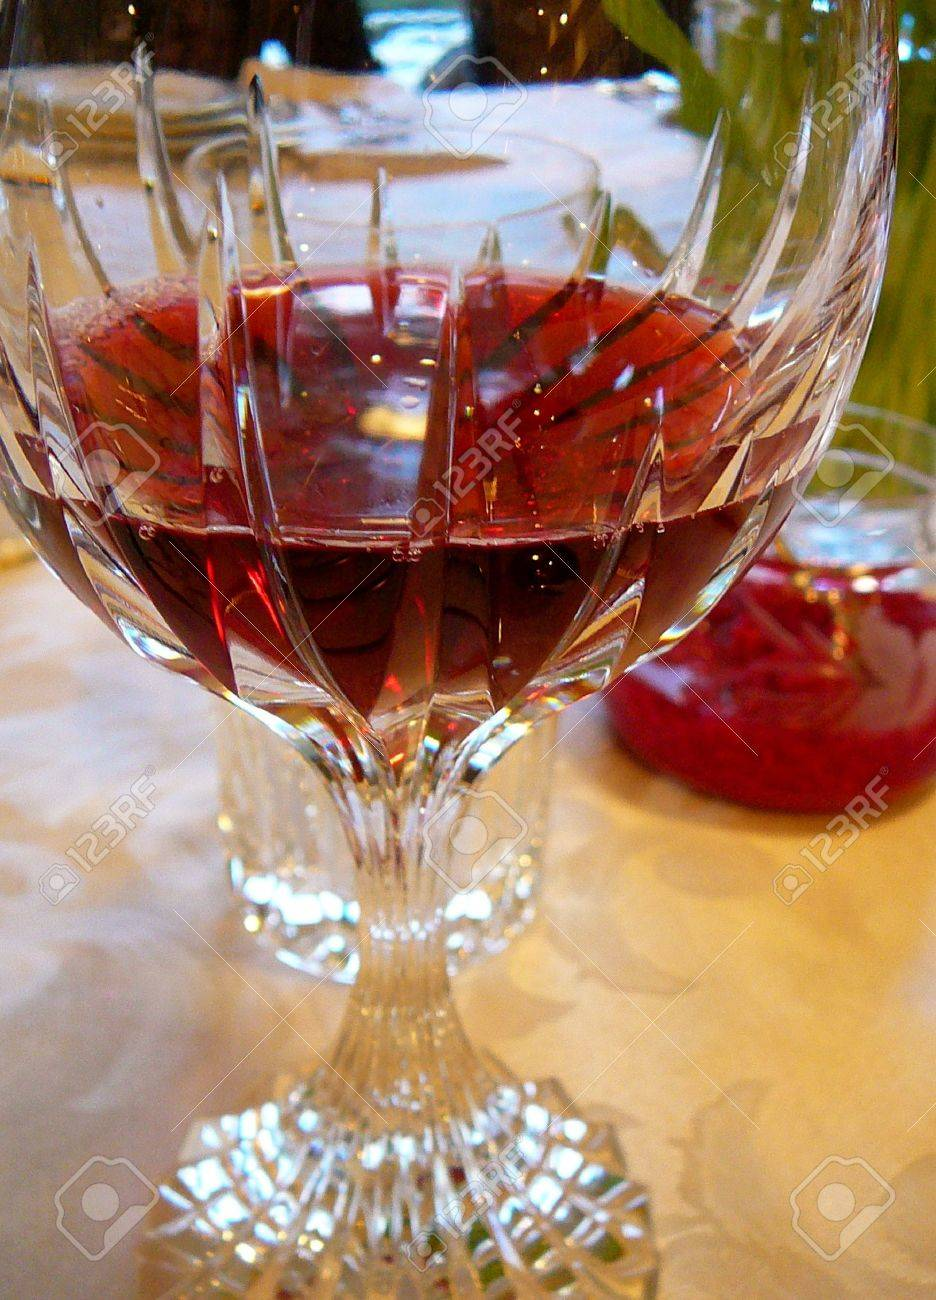 Traditional Passover Seder Setting: Goblet of Wine and Red Horseradish Stock Photo - 848987